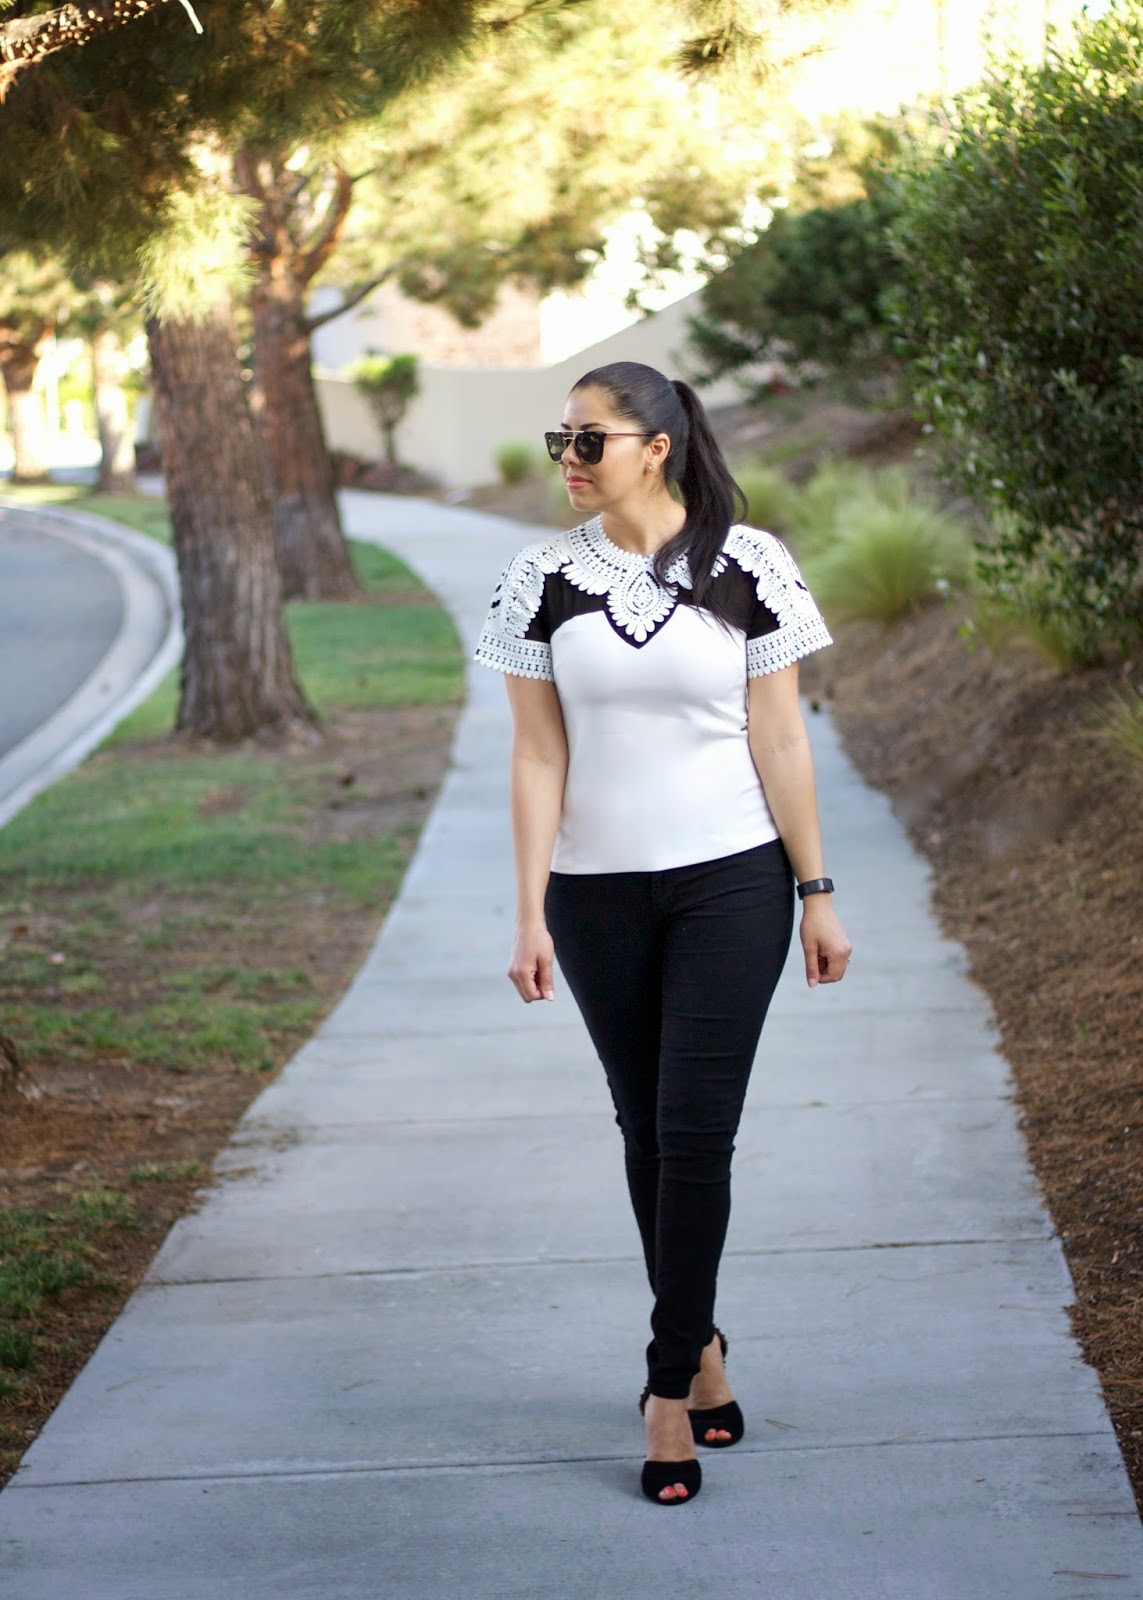 Black and white outfit, sheinside clothes blogger, zara ankle strap shoes, san diego street style, best of san diego bloggers